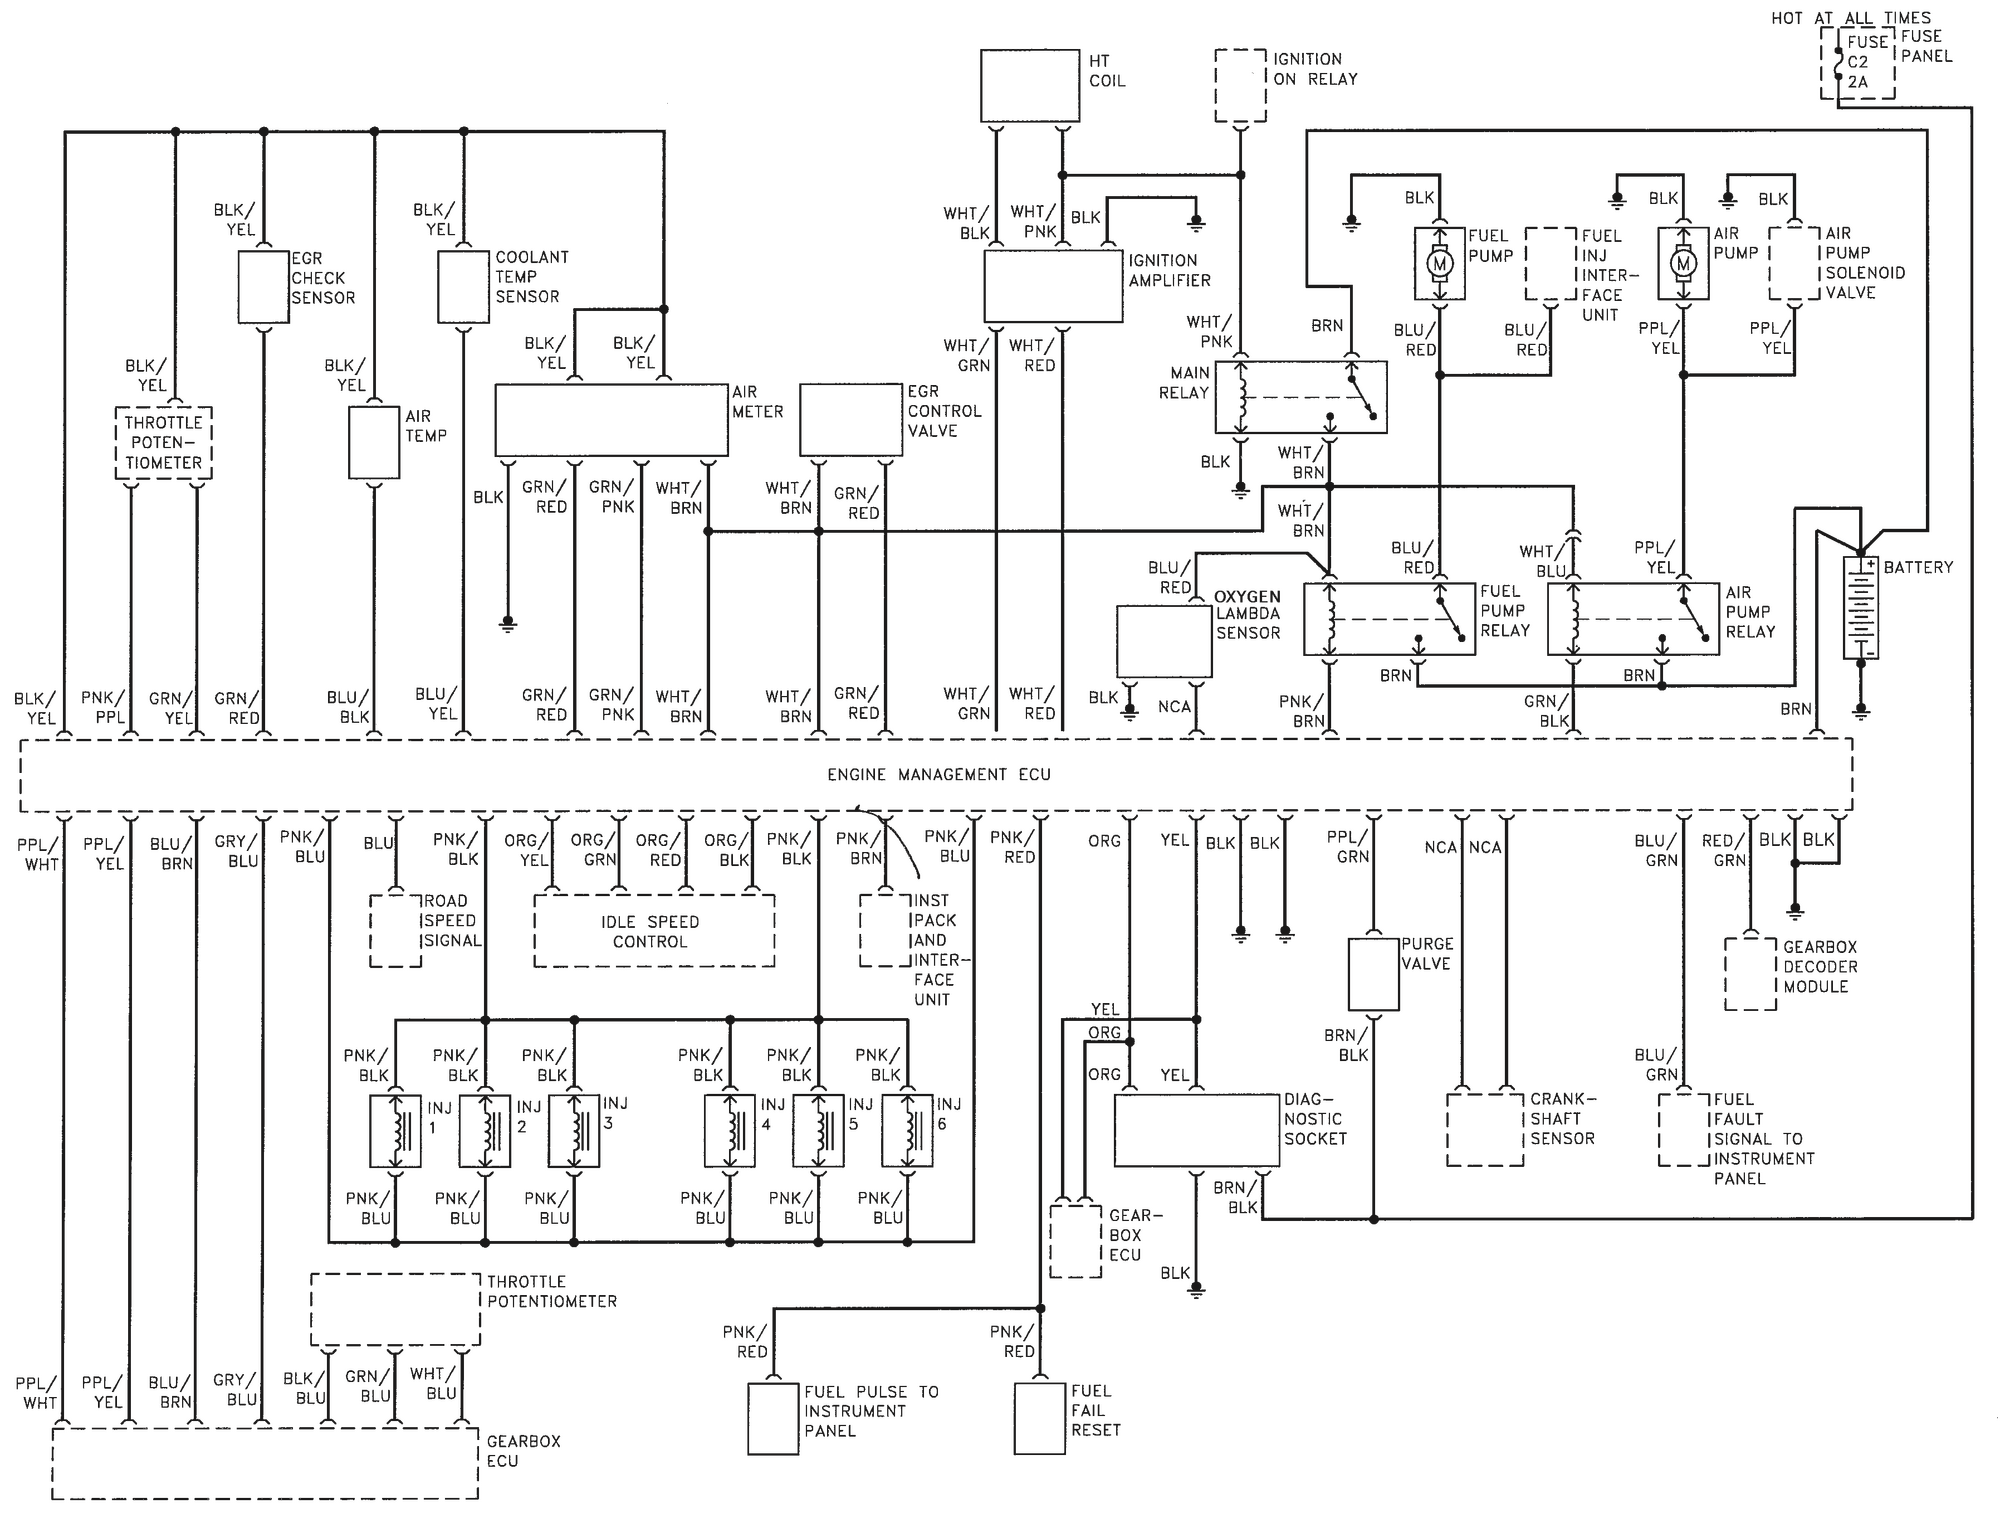 Xj40 Ecm Schematic